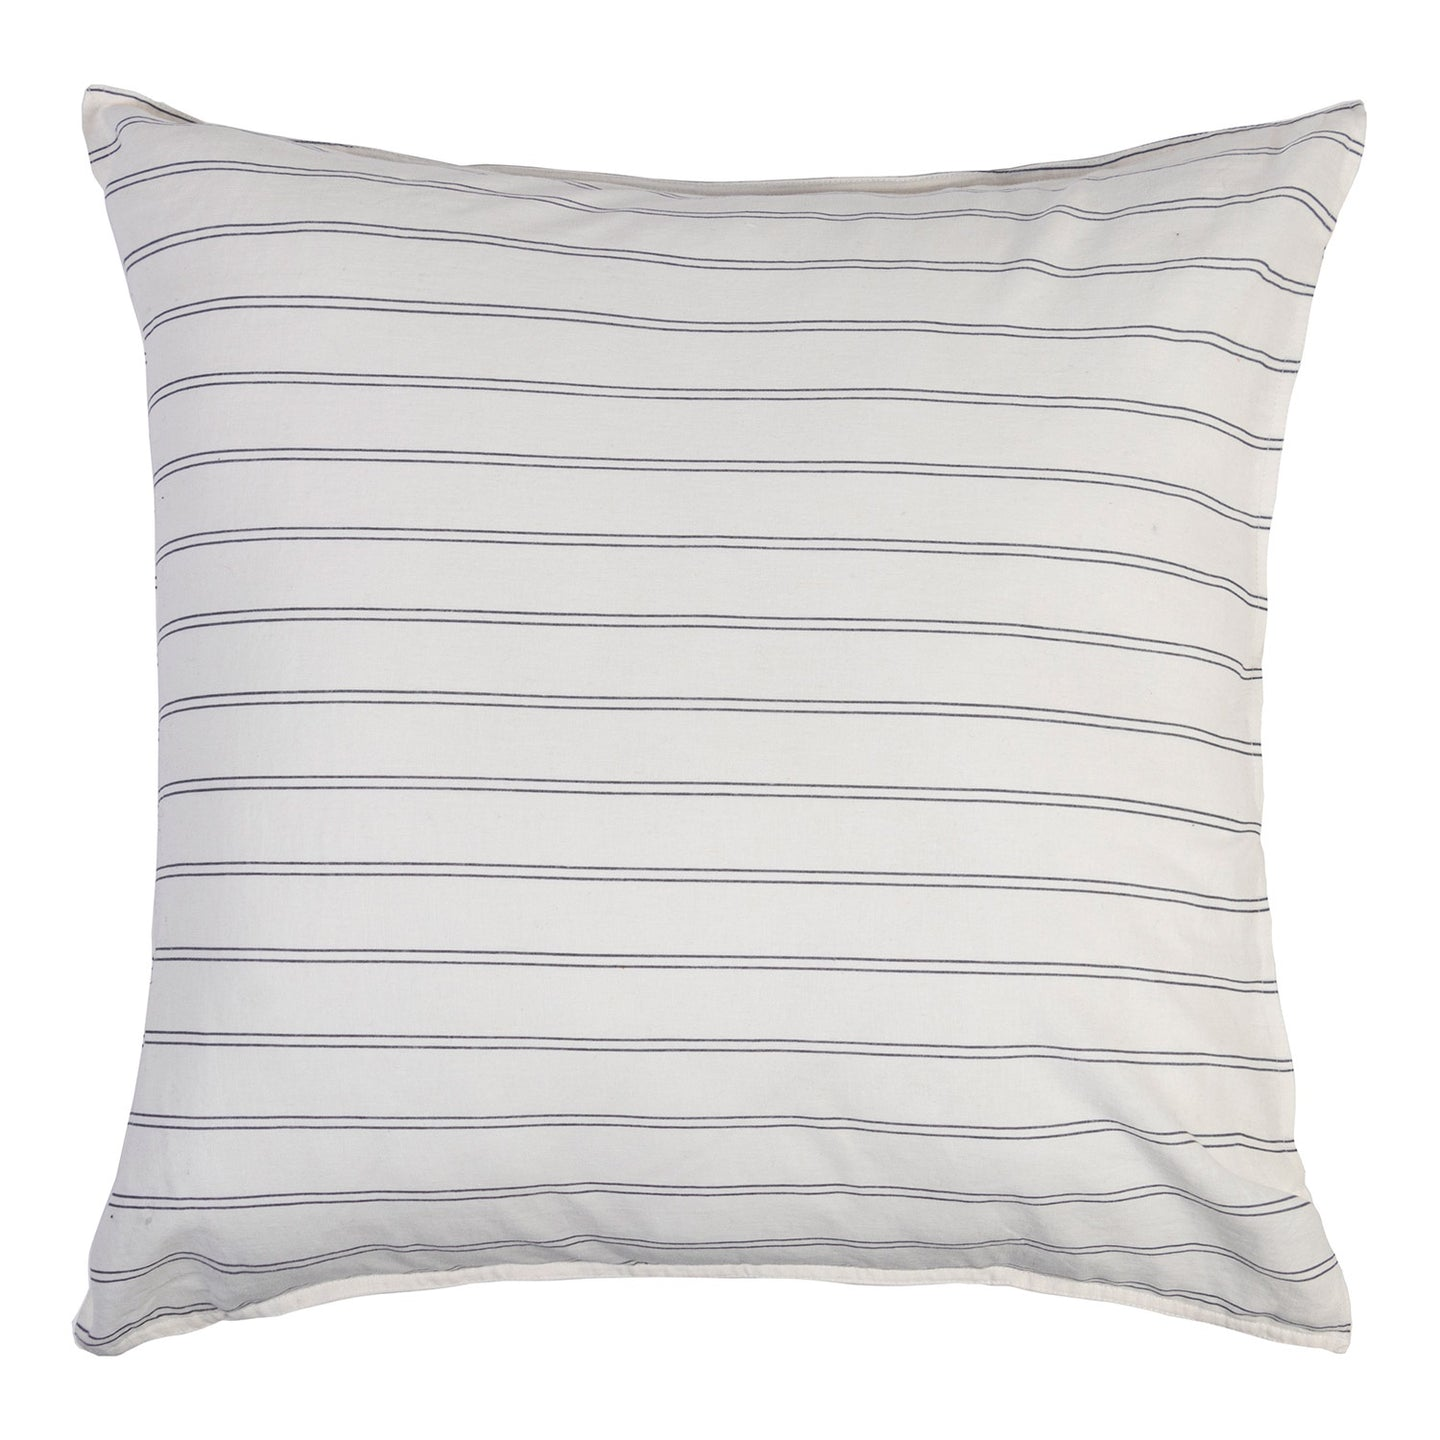 Stripe Linen Blend Euro Covers - Pair